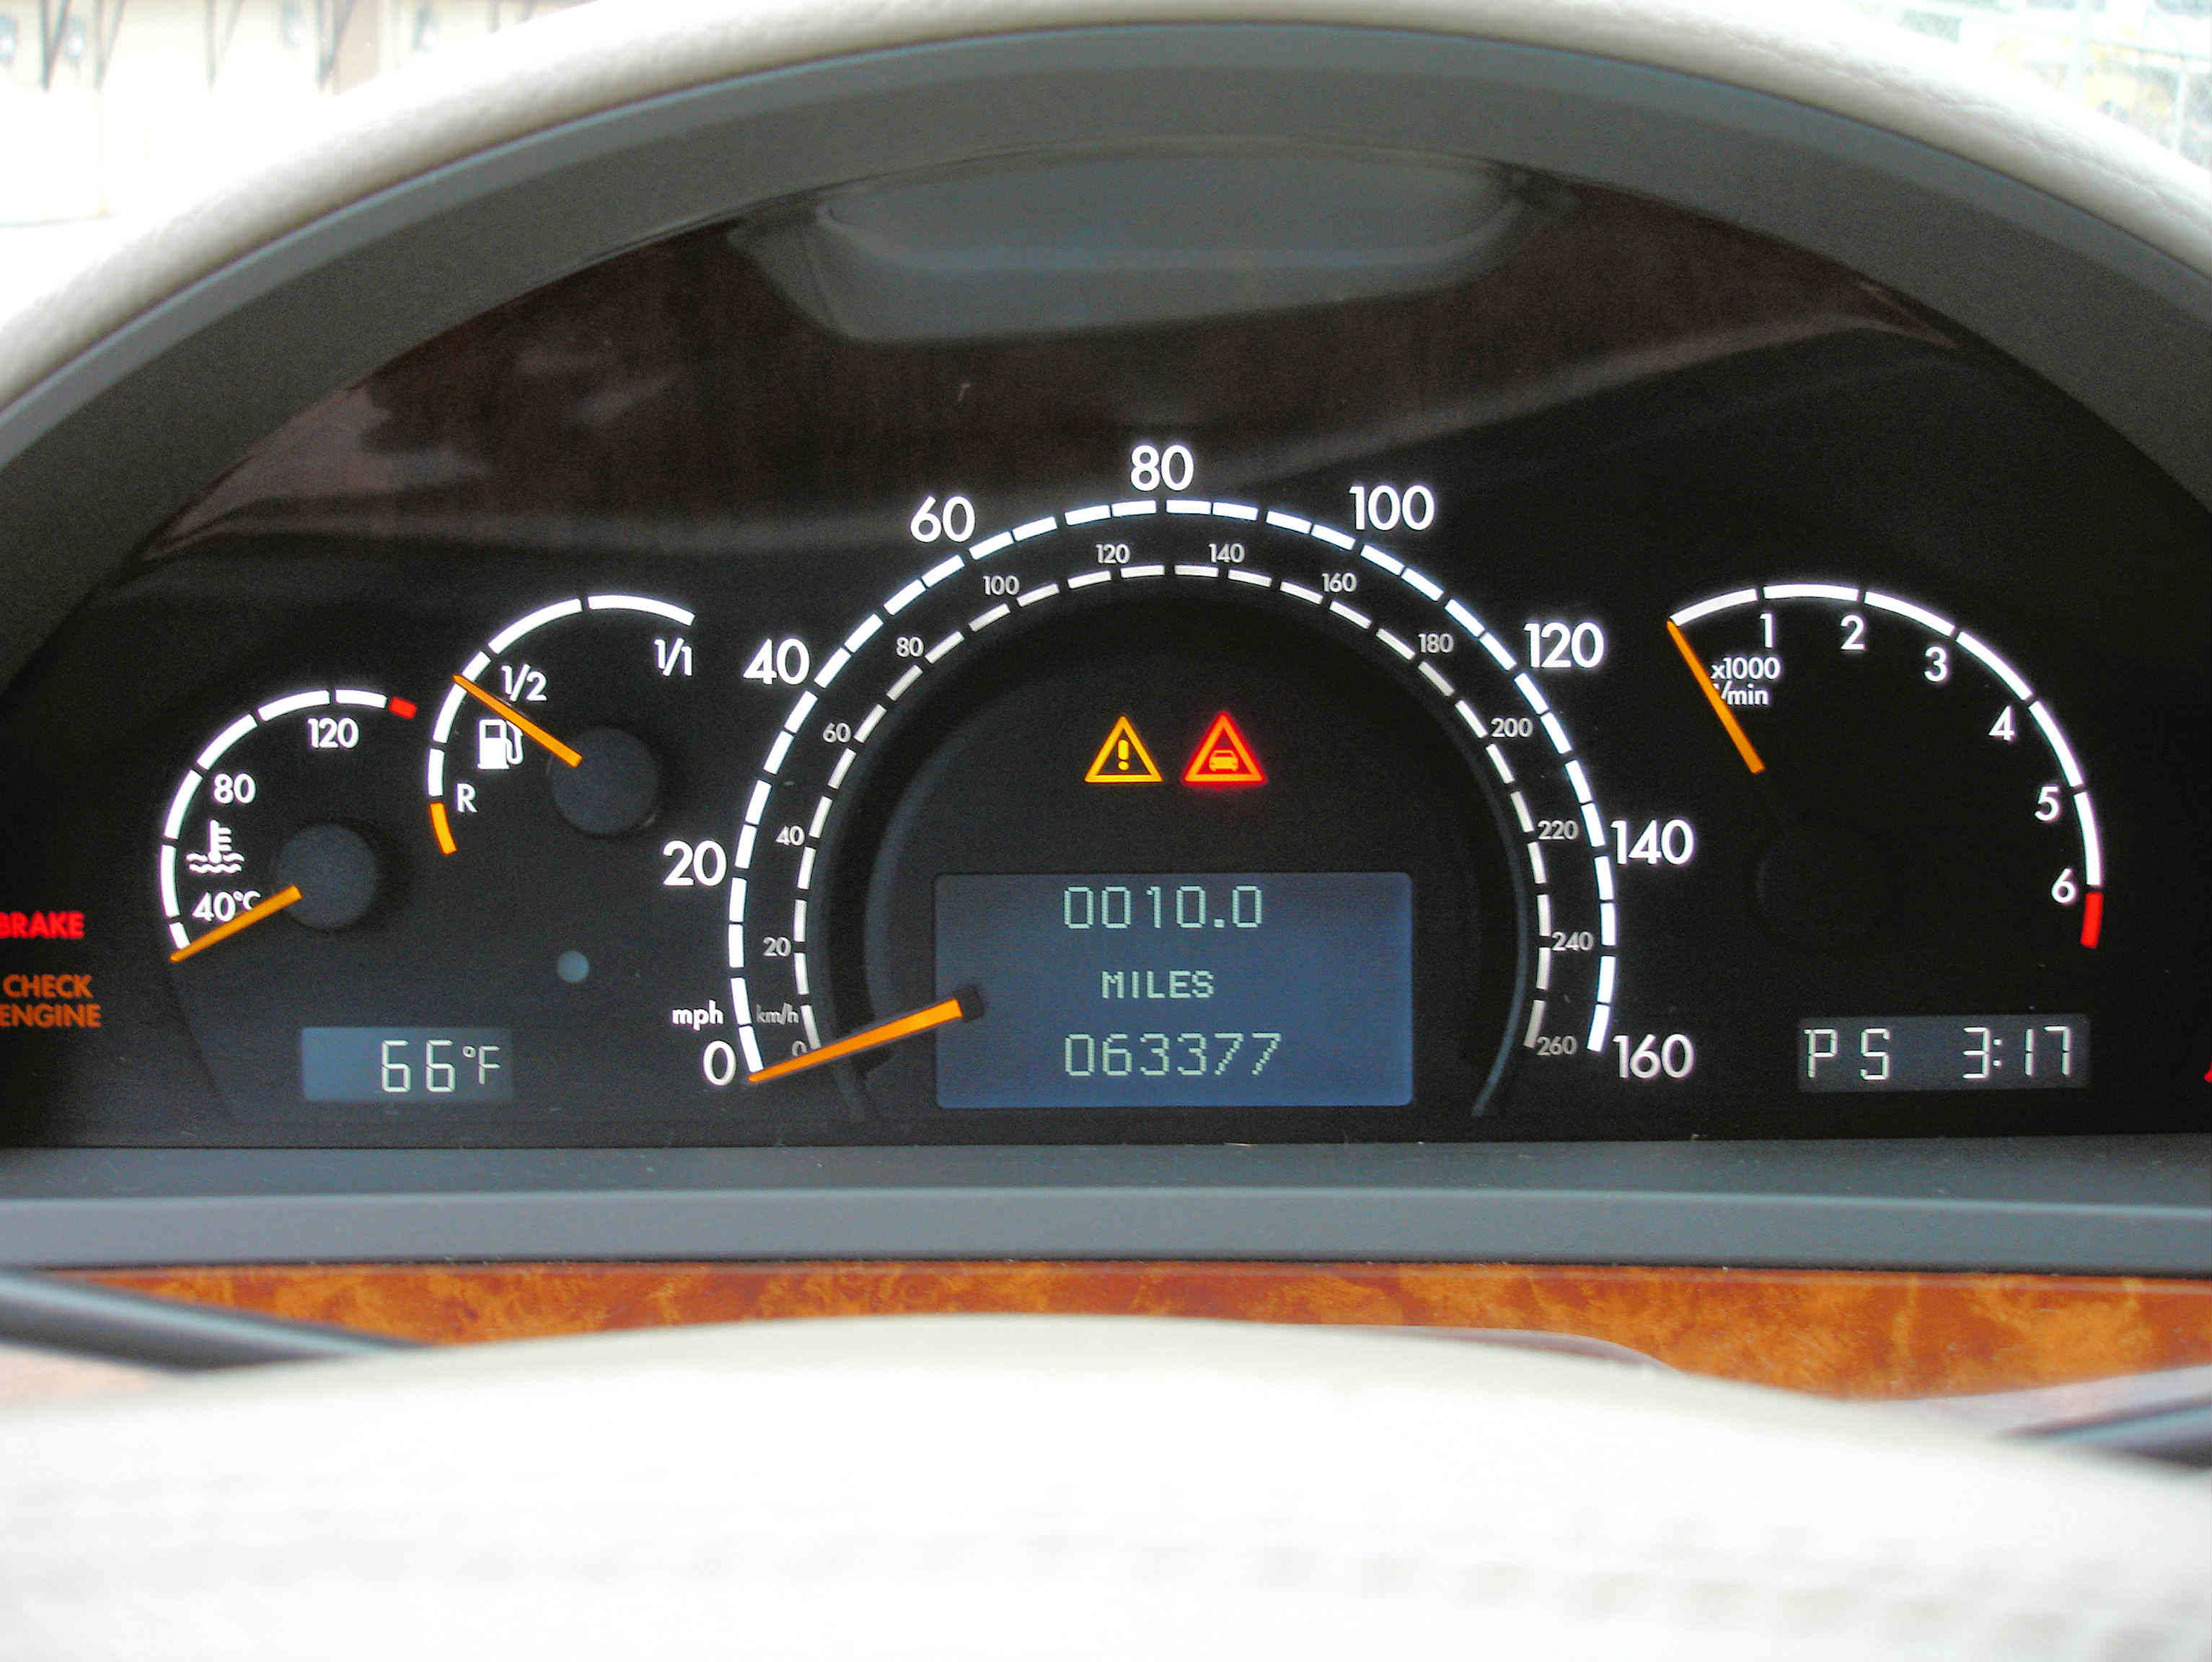 image of mileage and odometer on a car dashboard